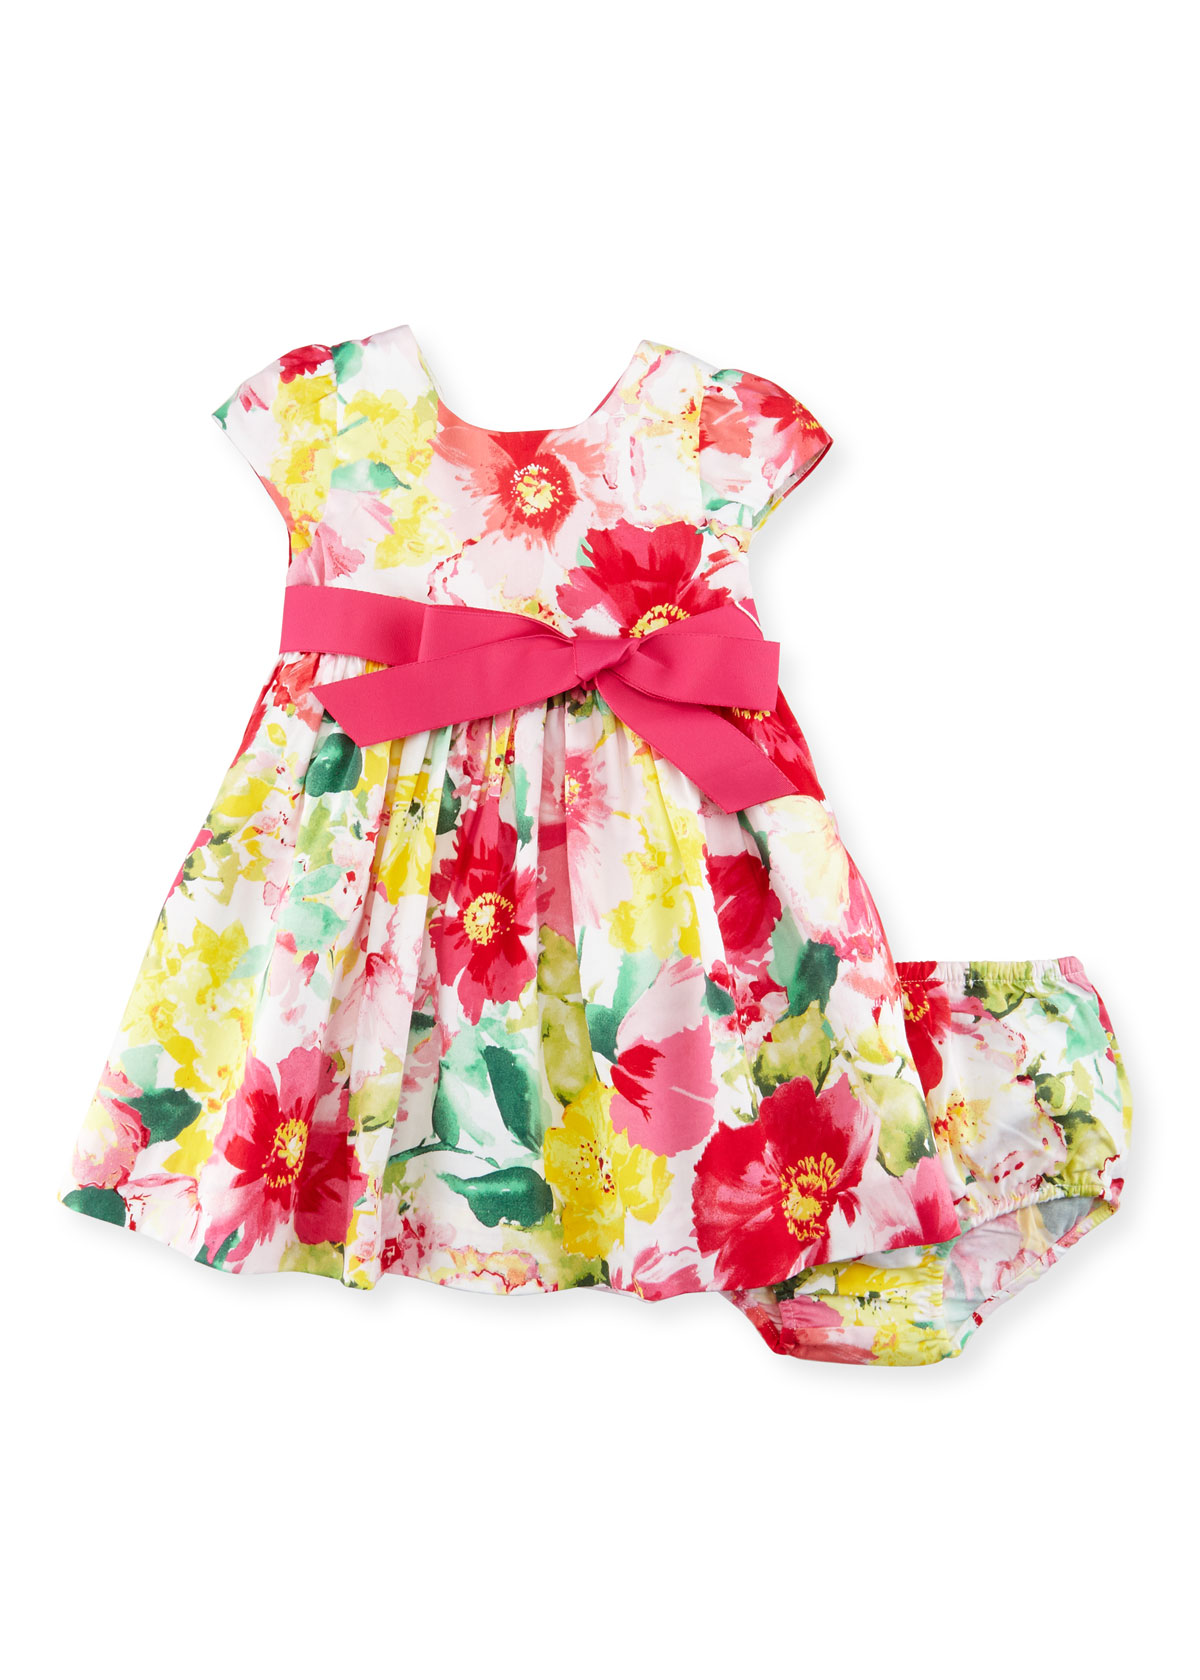 Cap-Sleeve Floral Poplin Dress w/ Bloomers, Pink, Size 9-24 Months, Infant Girl's, Size: 12 Months - Ralph Lauren Childrenswear